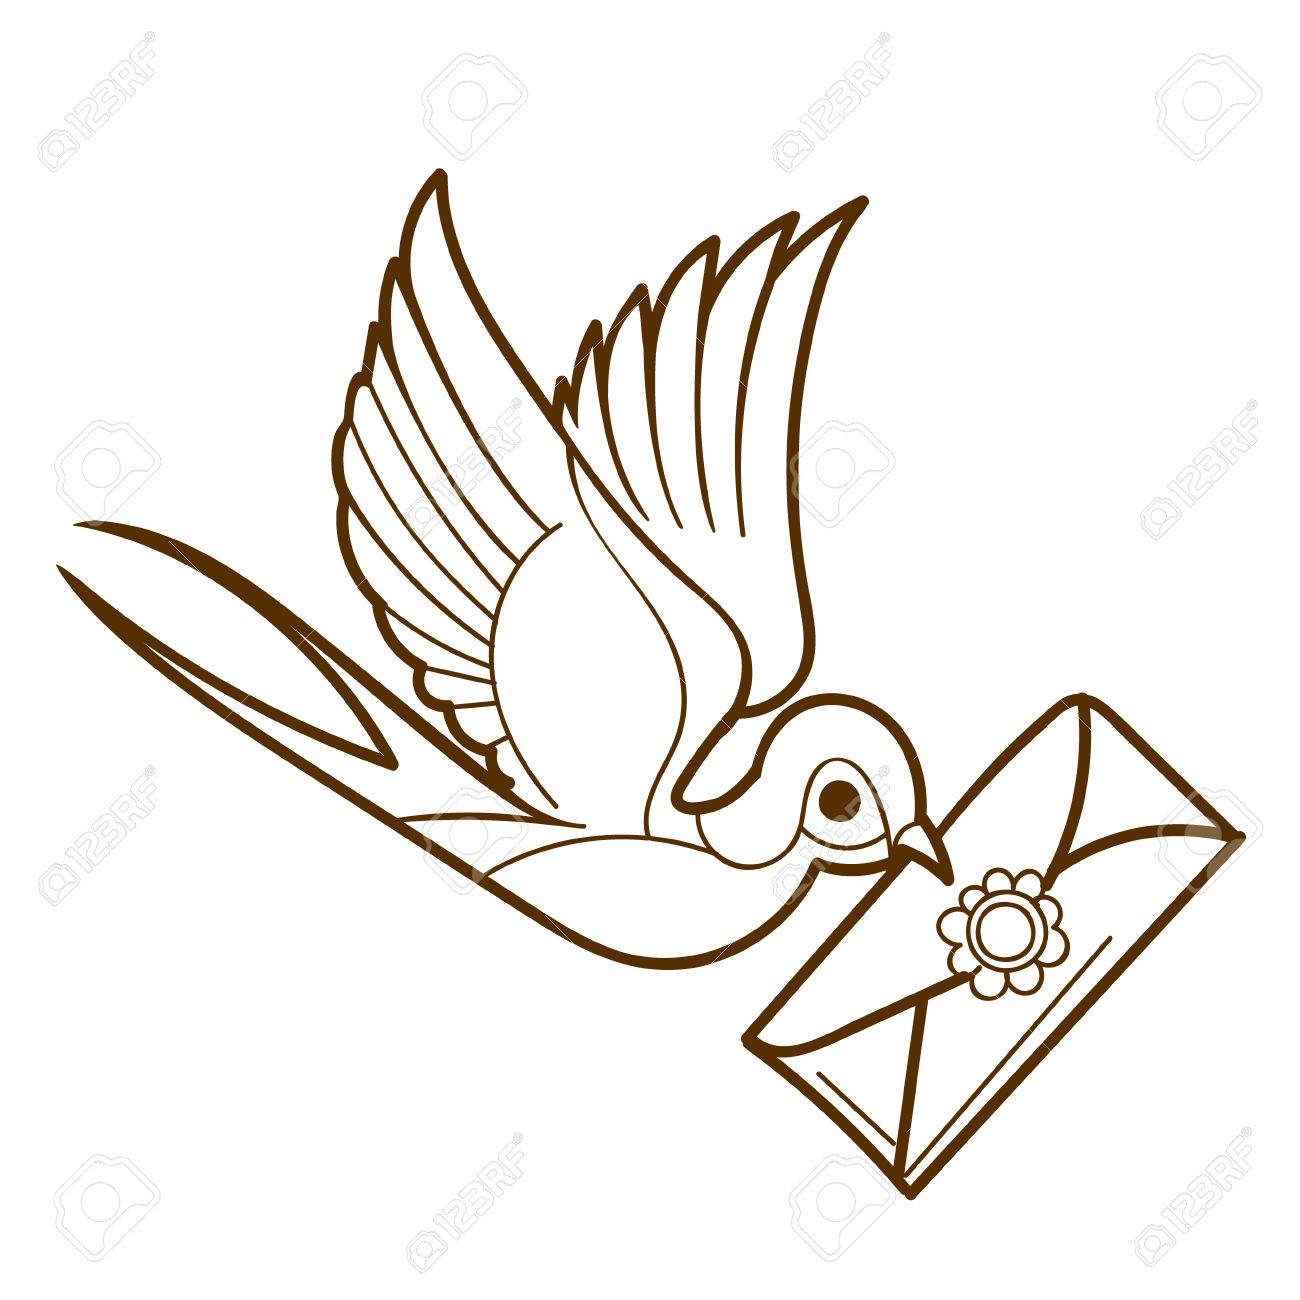 swallow with a letter sketch tattoo on a white background outline drawing stock vector jpg 1300x1300